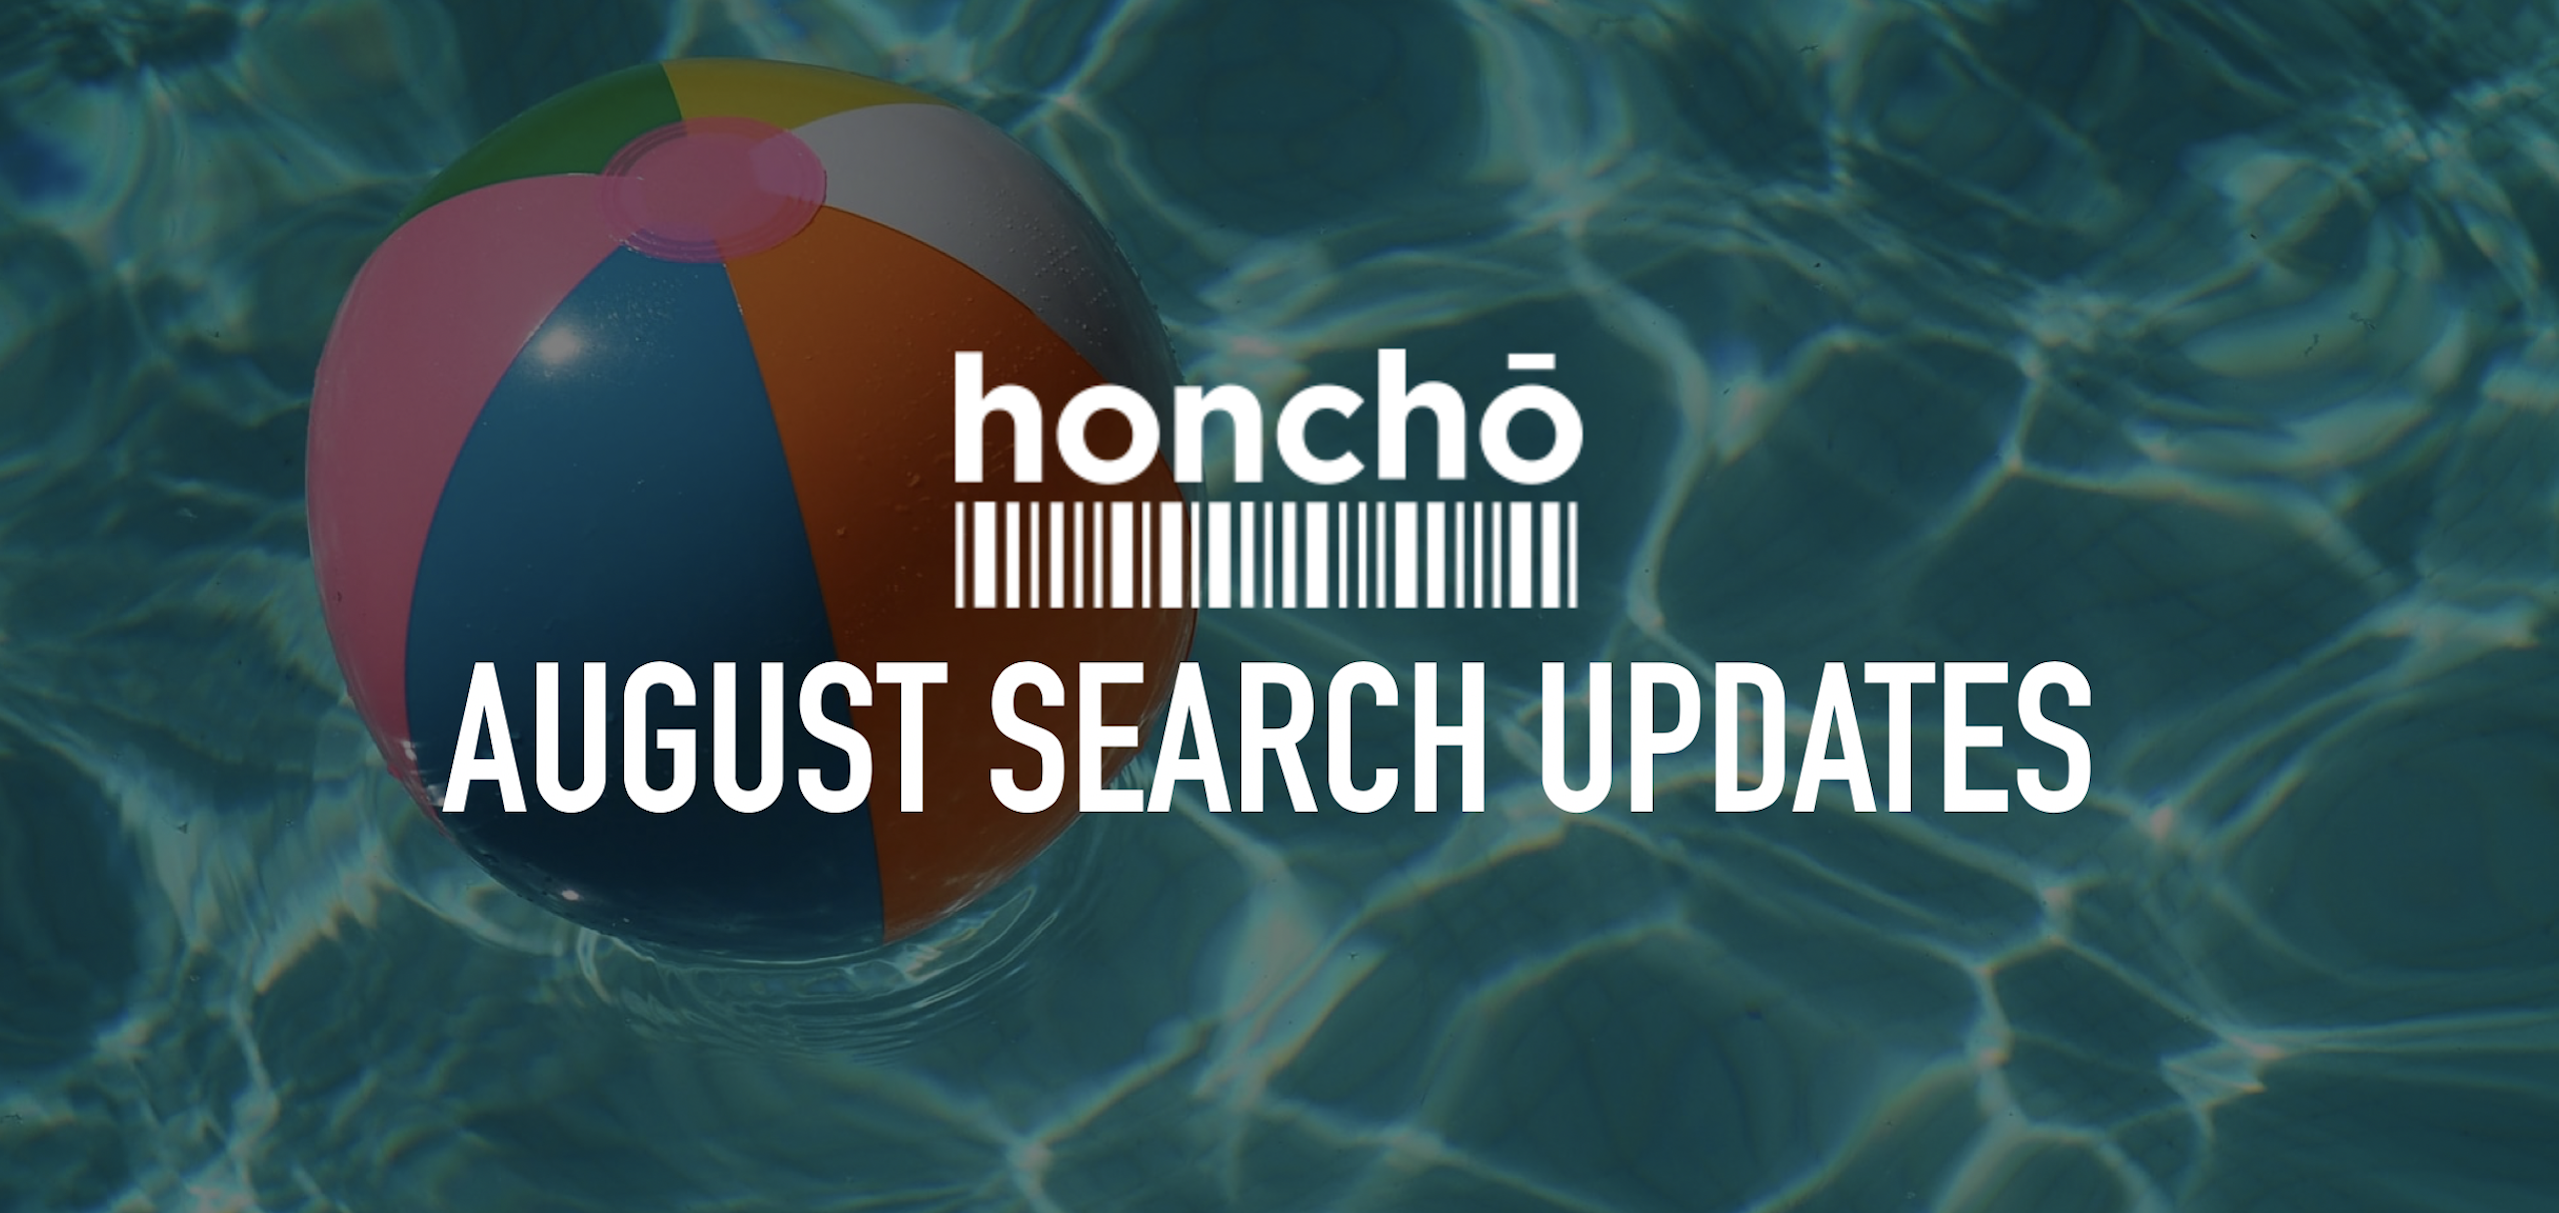 August Search Updates